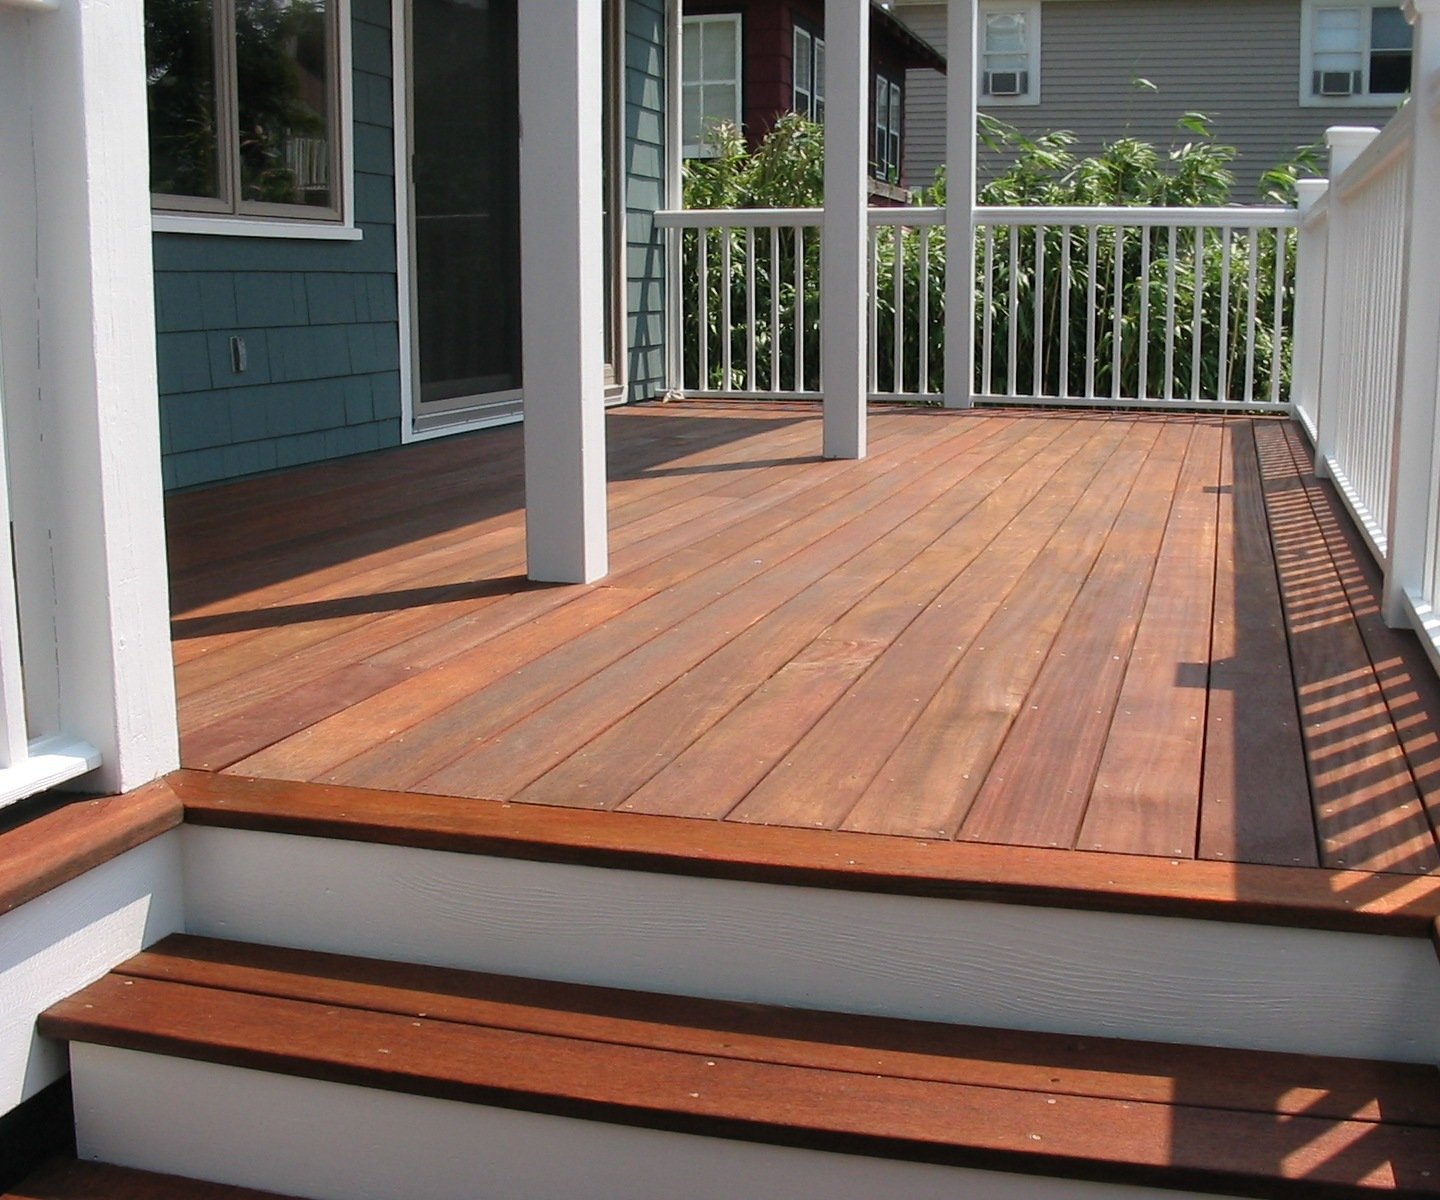 The Benefits Of Regular Deck Staining Chevy Chase Exteriors